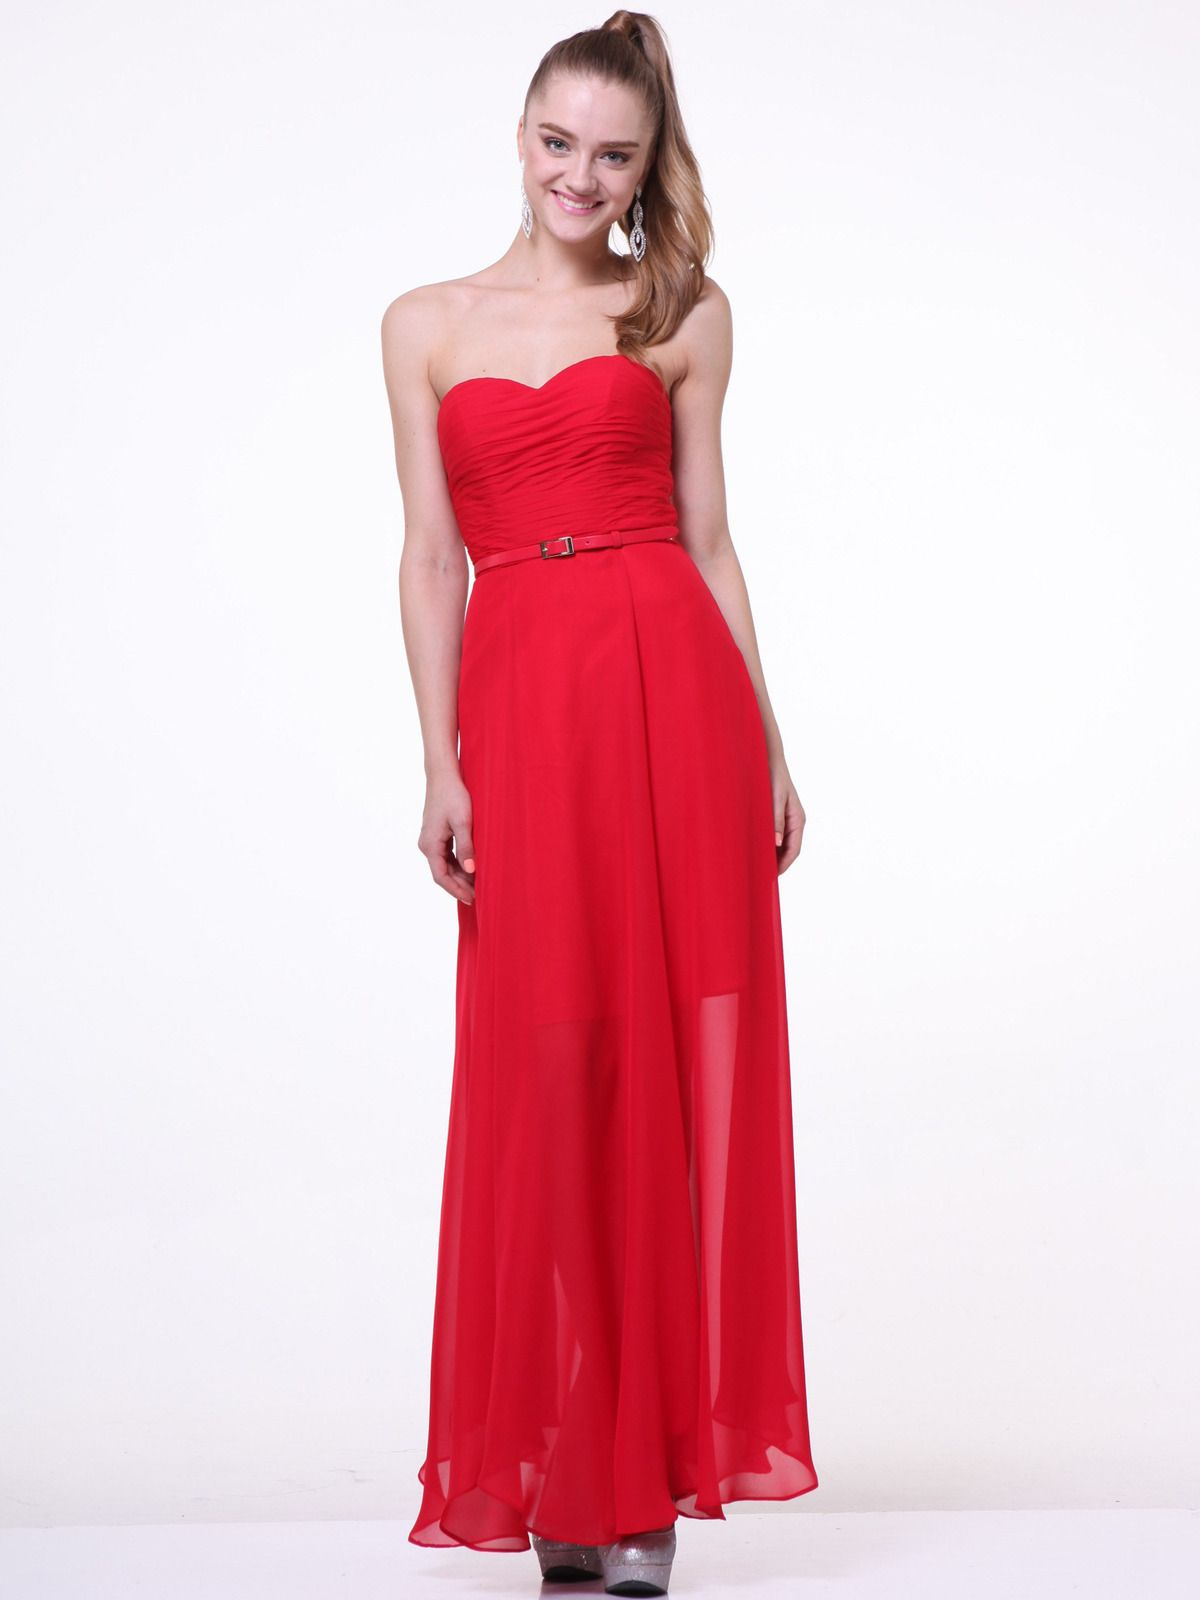 Strapless Pleated Sweetheart Evening Dress | Sung Boutique L.A.